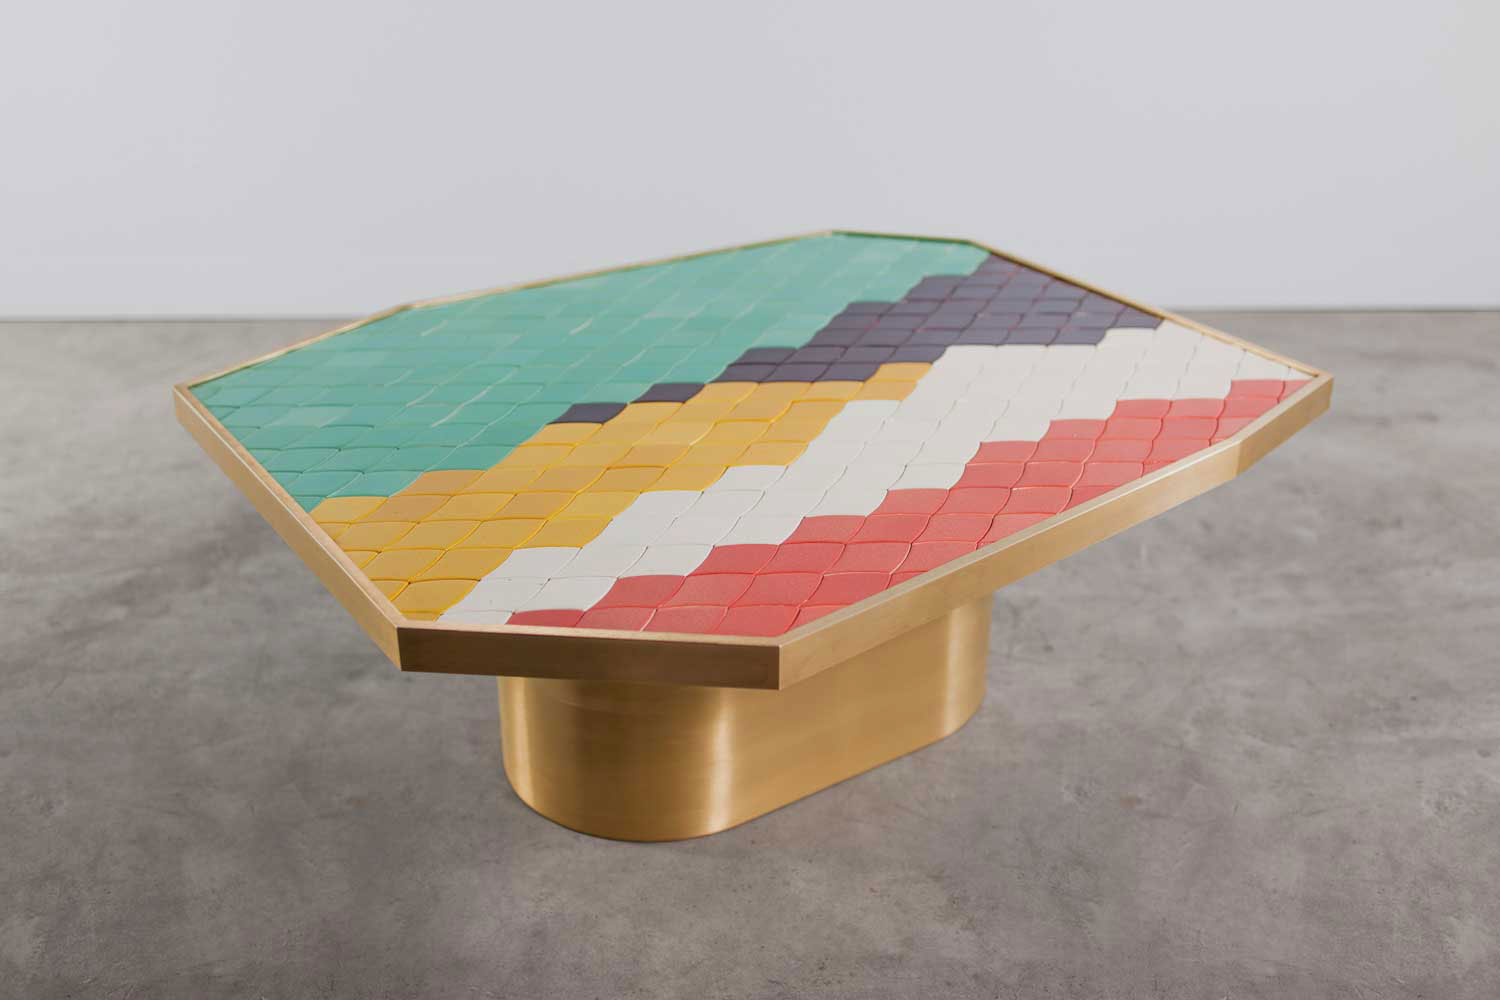 Landscape Table 4 by India Mahdavi at Design Days Dubai | 2014 | Yellowtrace